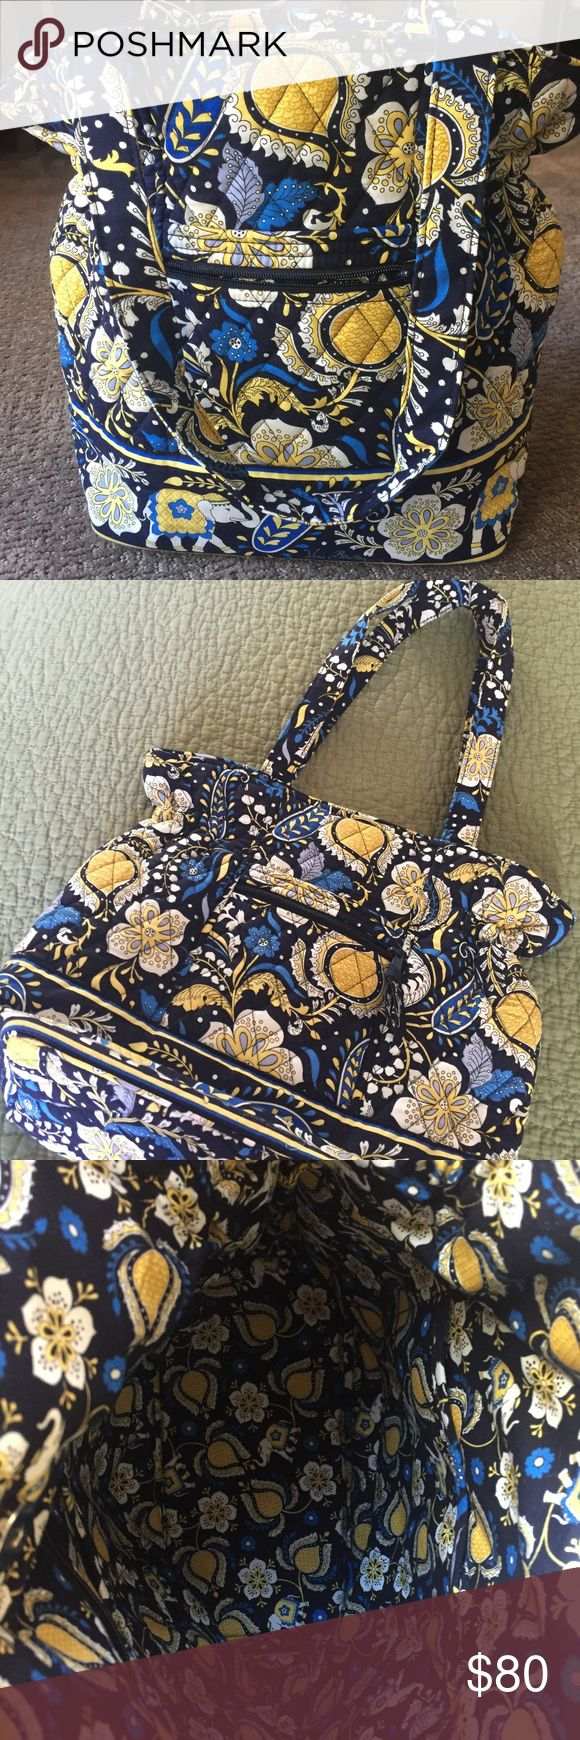 """VERA BRADLEY Carryall Bag Brand New / No Tag  This Bag could also be used as a Diaper Bag (a great Baby Shower Gift)  Dimentions:  13"""" Tall / 30"""" Circumference / (2) 24"""" Shoulder Straps Inside of Bag: It has (3) 4 1/2"""" Wide X 7"""" Tall pockets (great for carrying 3 Bottles) 7"""" Wide X 6"""" Deep Zippered Pocket on the other side Vera Bradley Bags"""